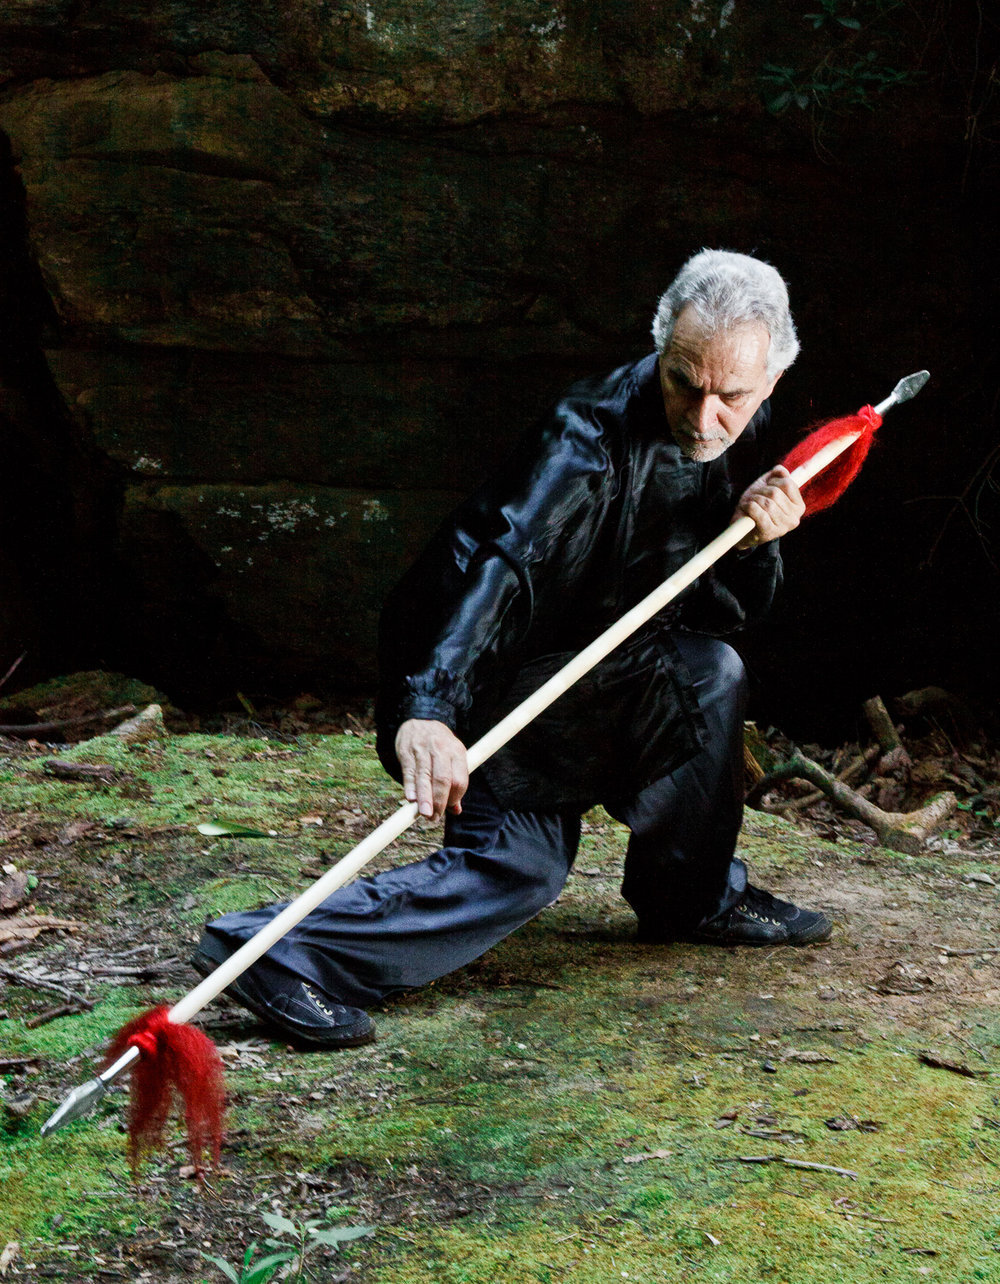 Sifu Paolillo with doubled-headed spear, 2012